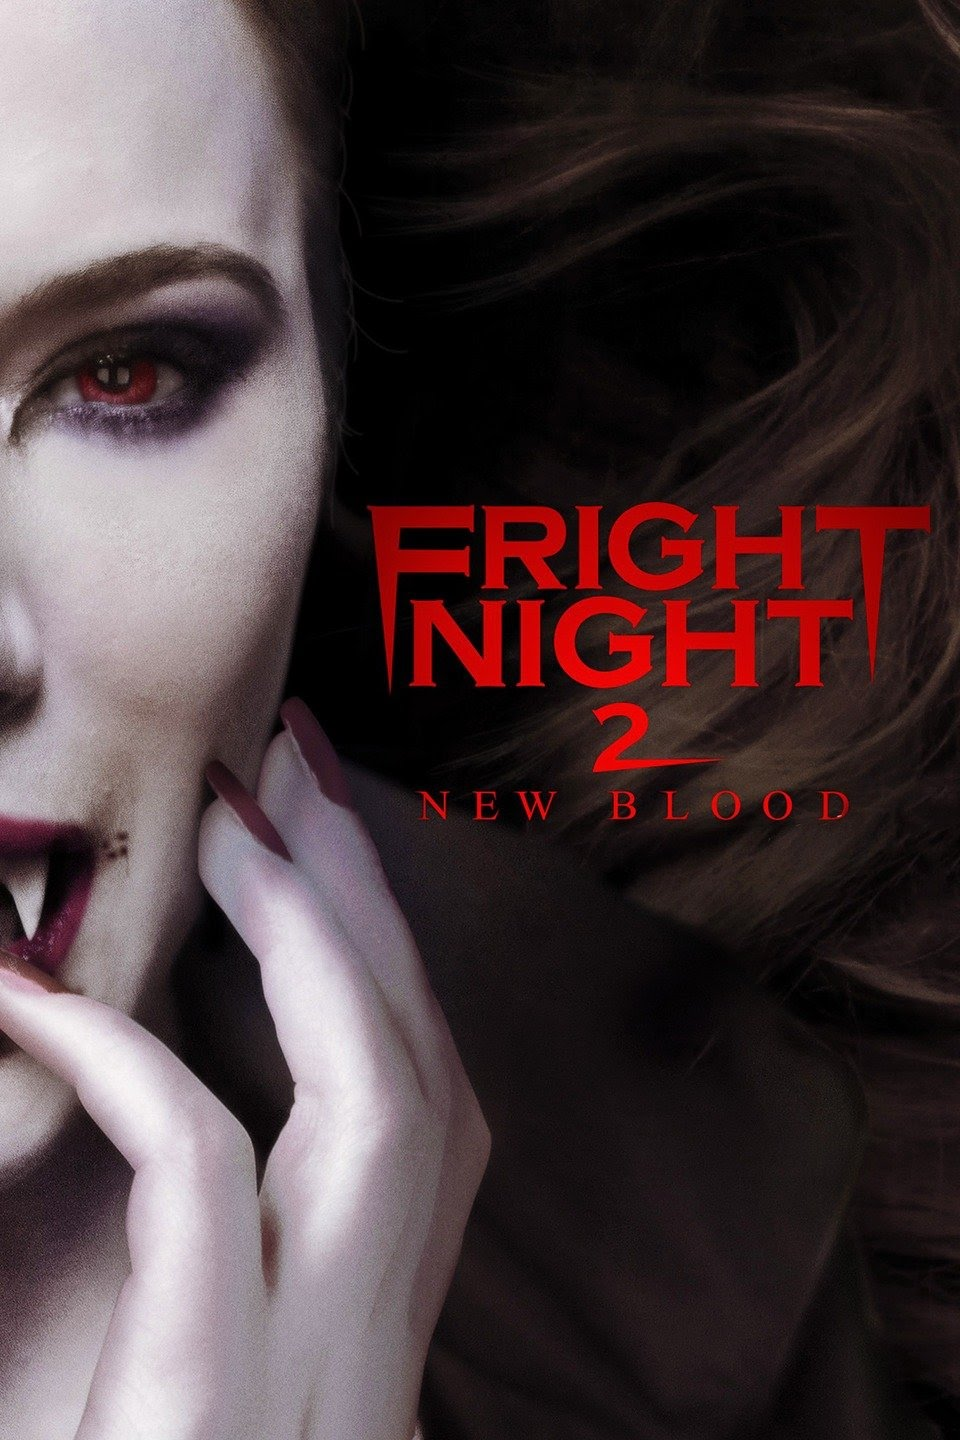 Fright Night 2: New Blood (2013)